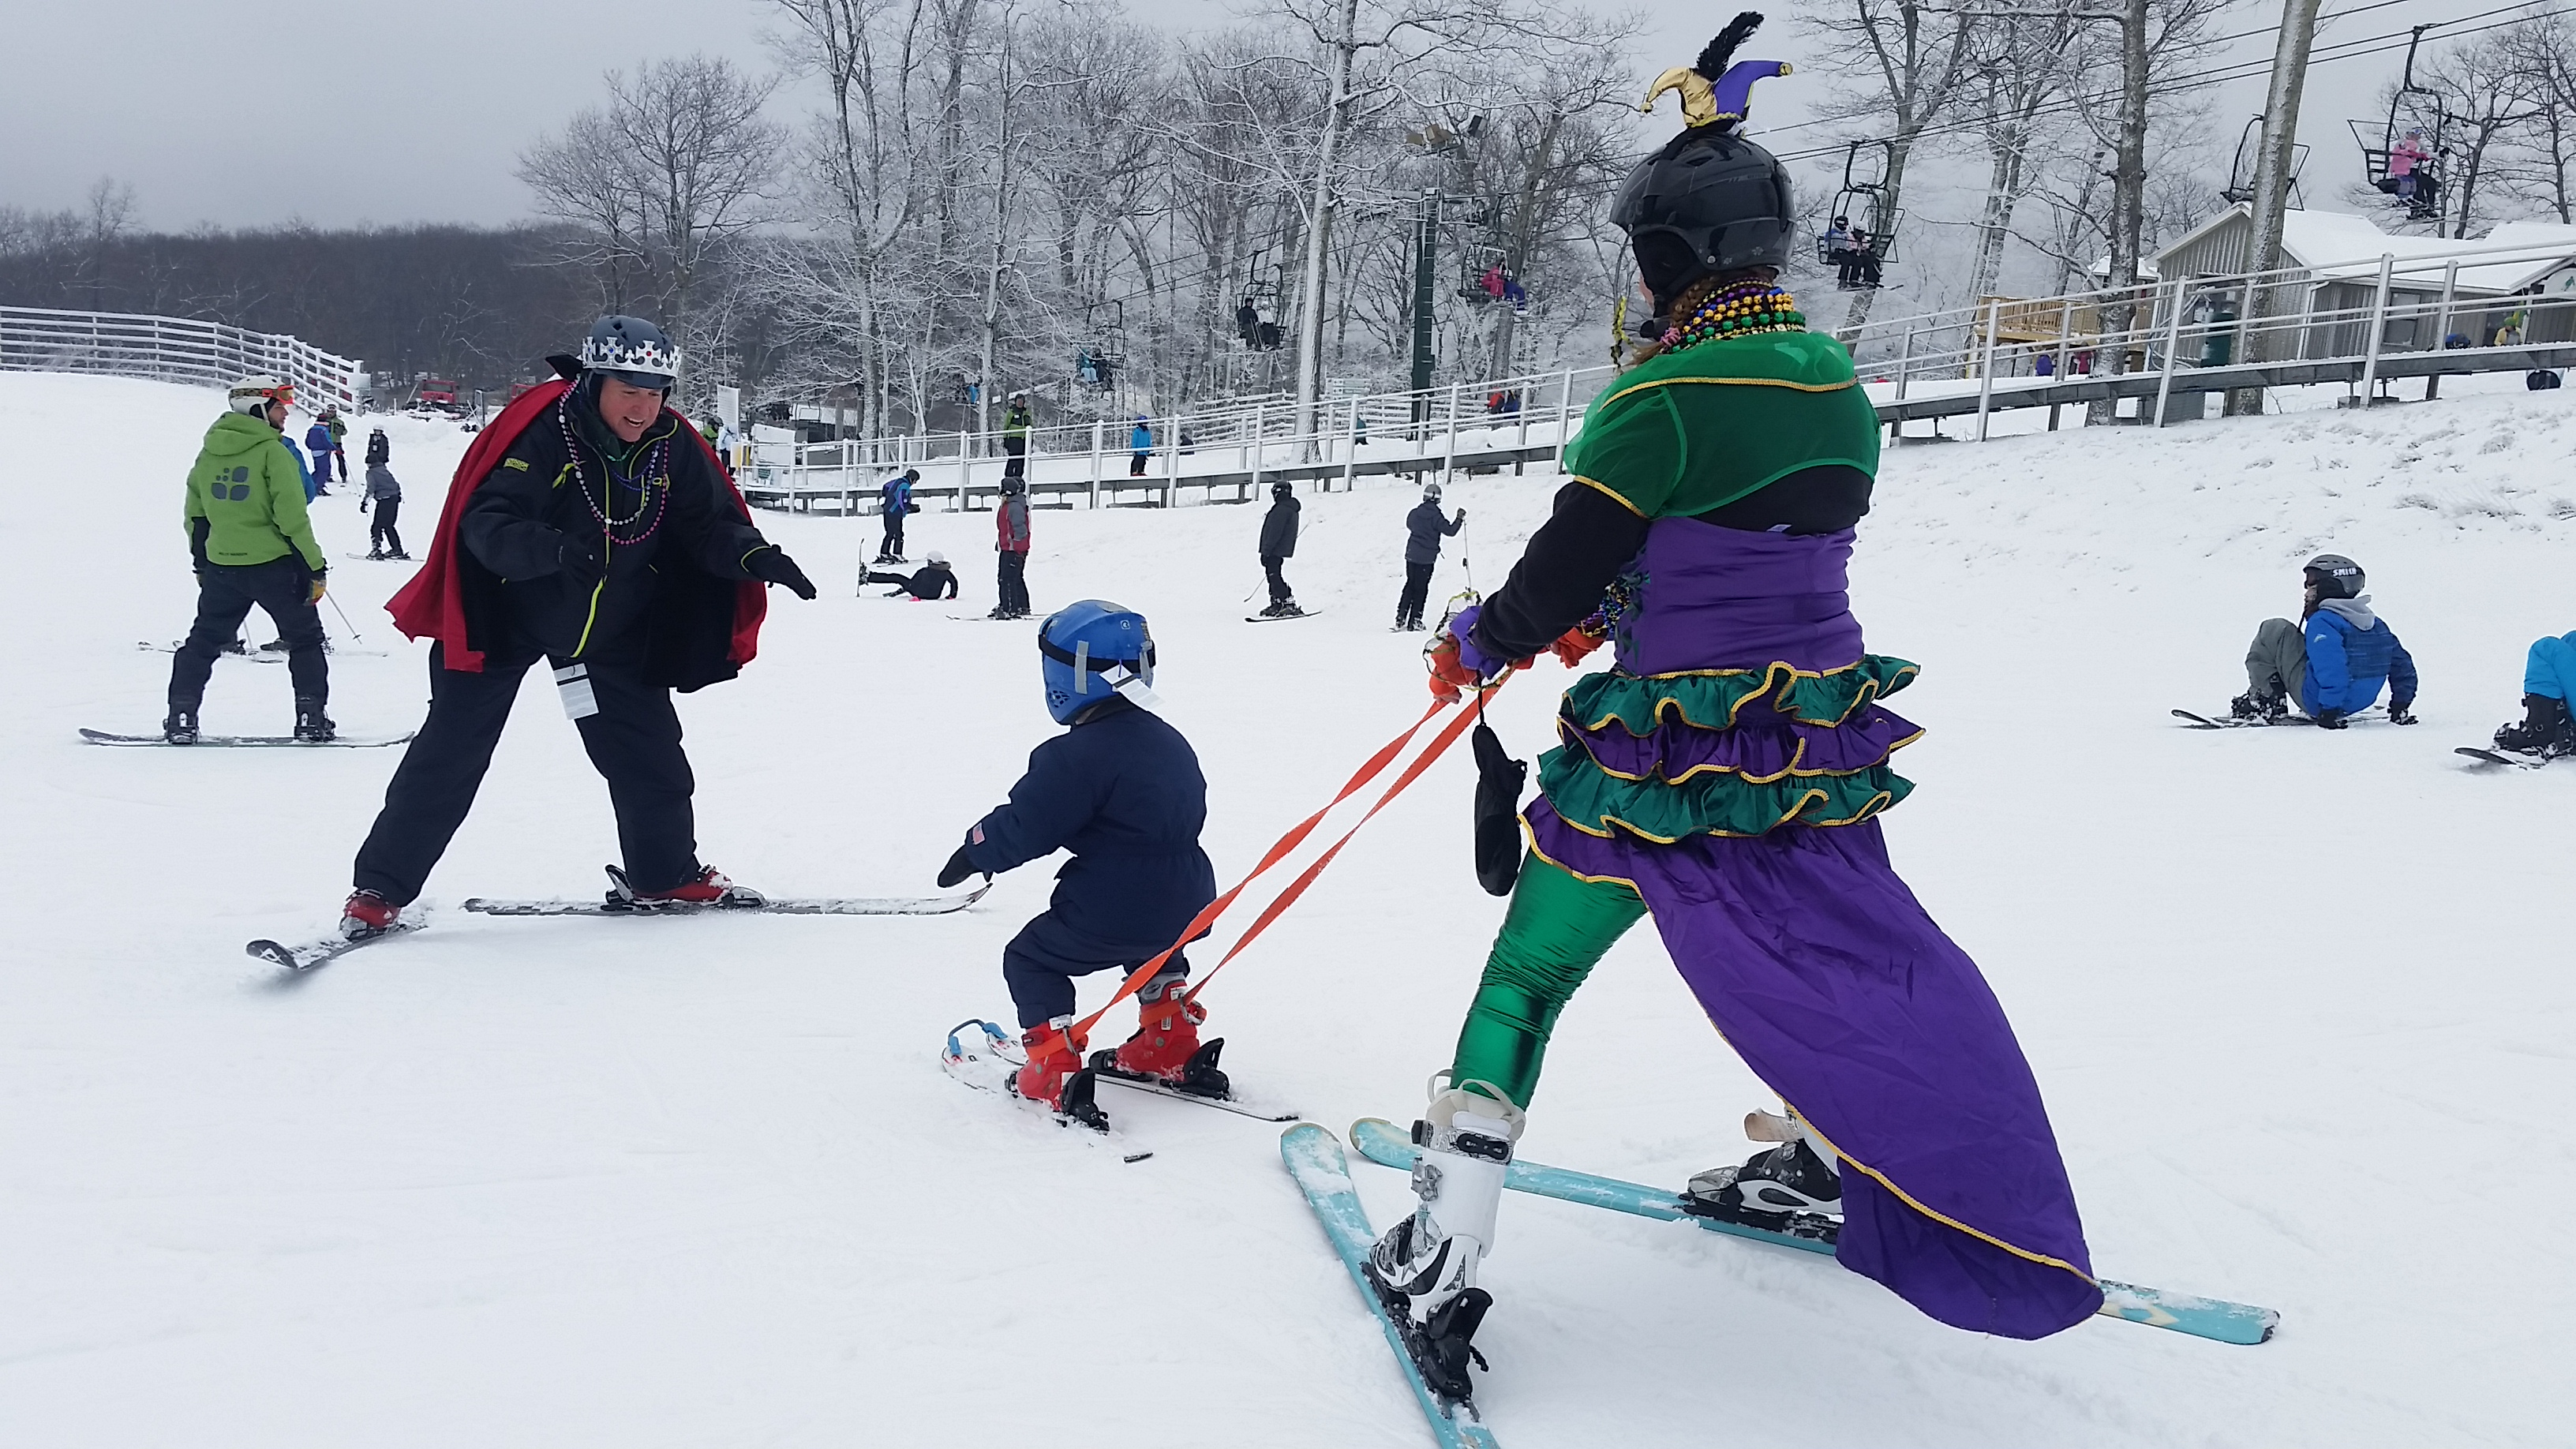 Wintergreen Adaptive Sports teachers help a young child learn to ski at Wintergreen Resort